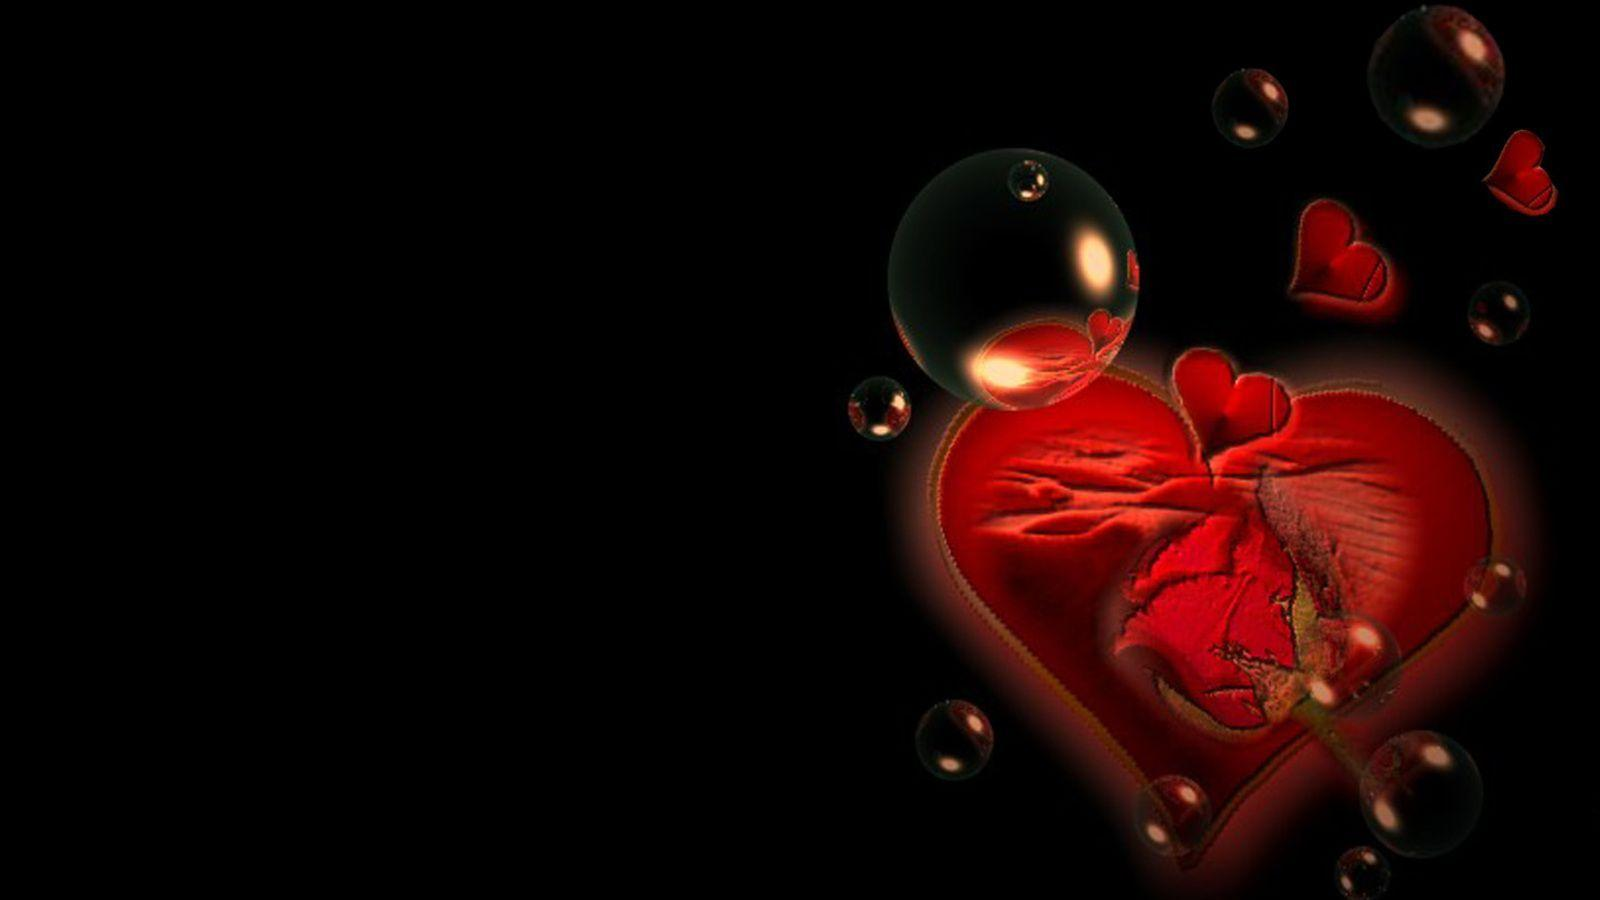 Love You Wallpaper 3d : Love 3D Wallpapers - Wallpaper cave